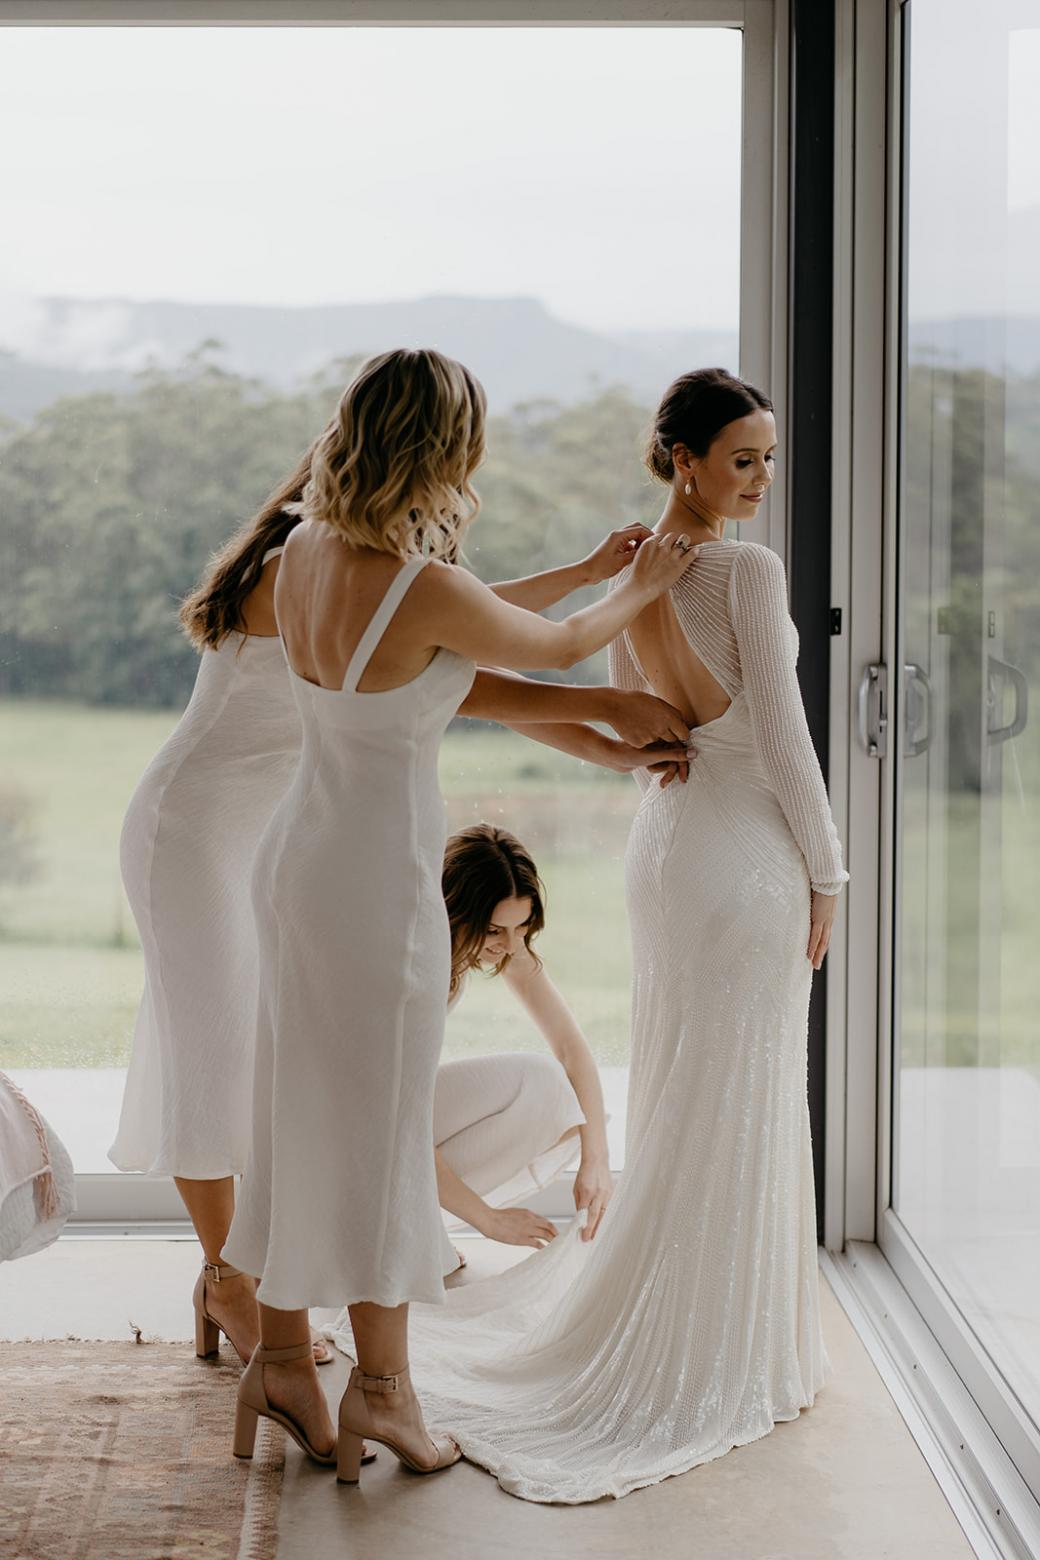 KWH bride Anna being dressed by her bridesmaids; wearing the Cassie gown with a long train.